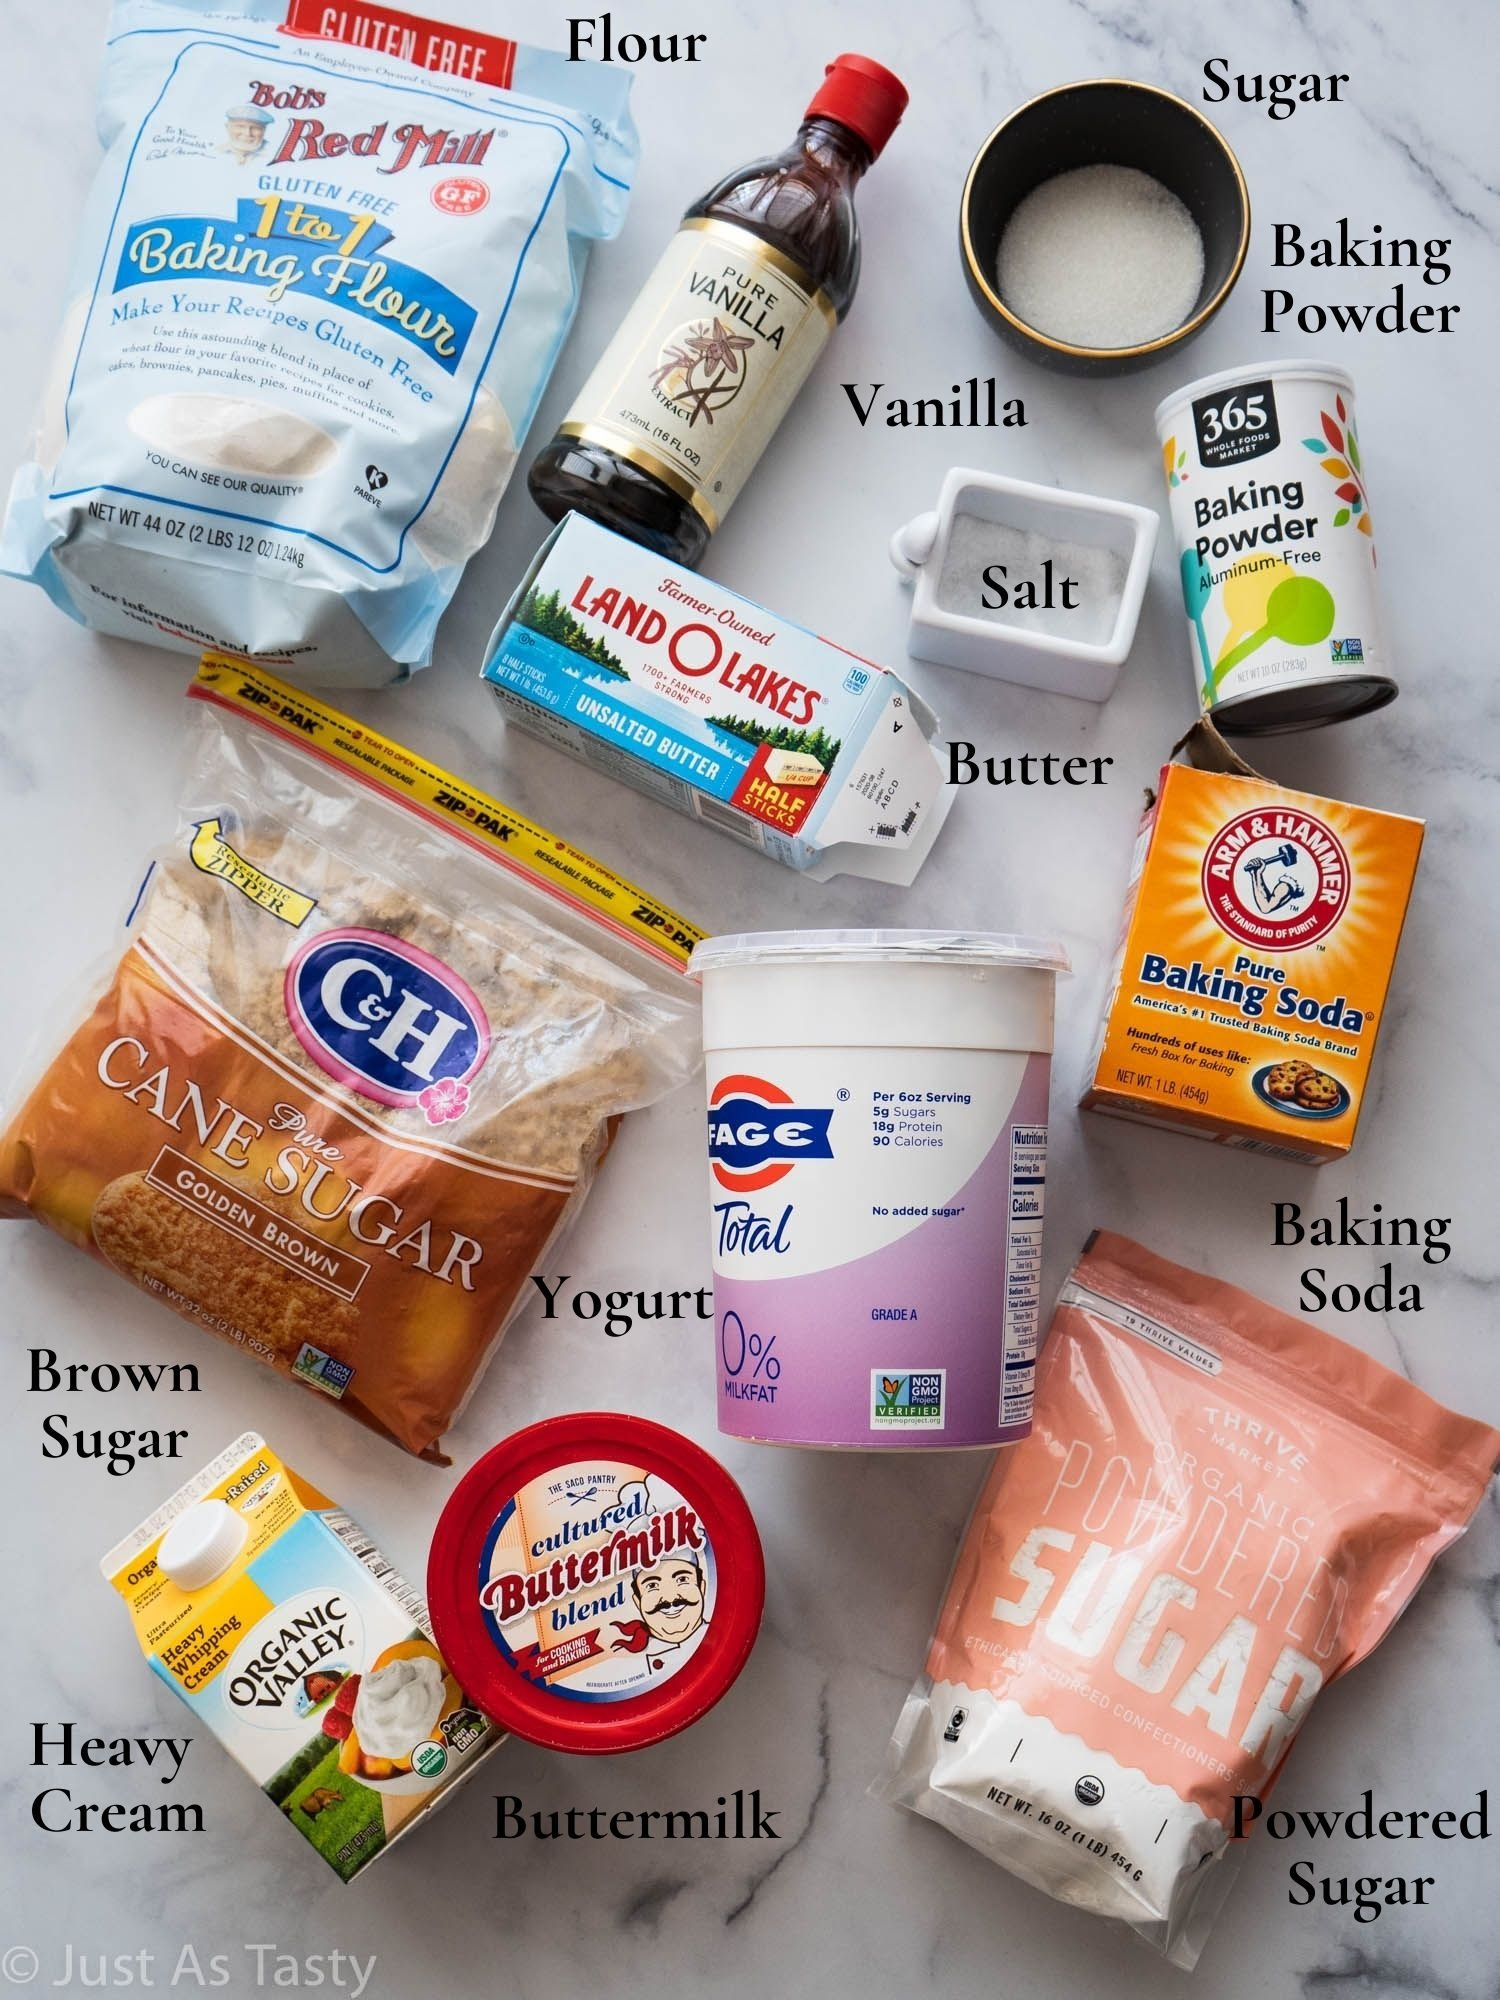 Butterscotch cake ingredients.